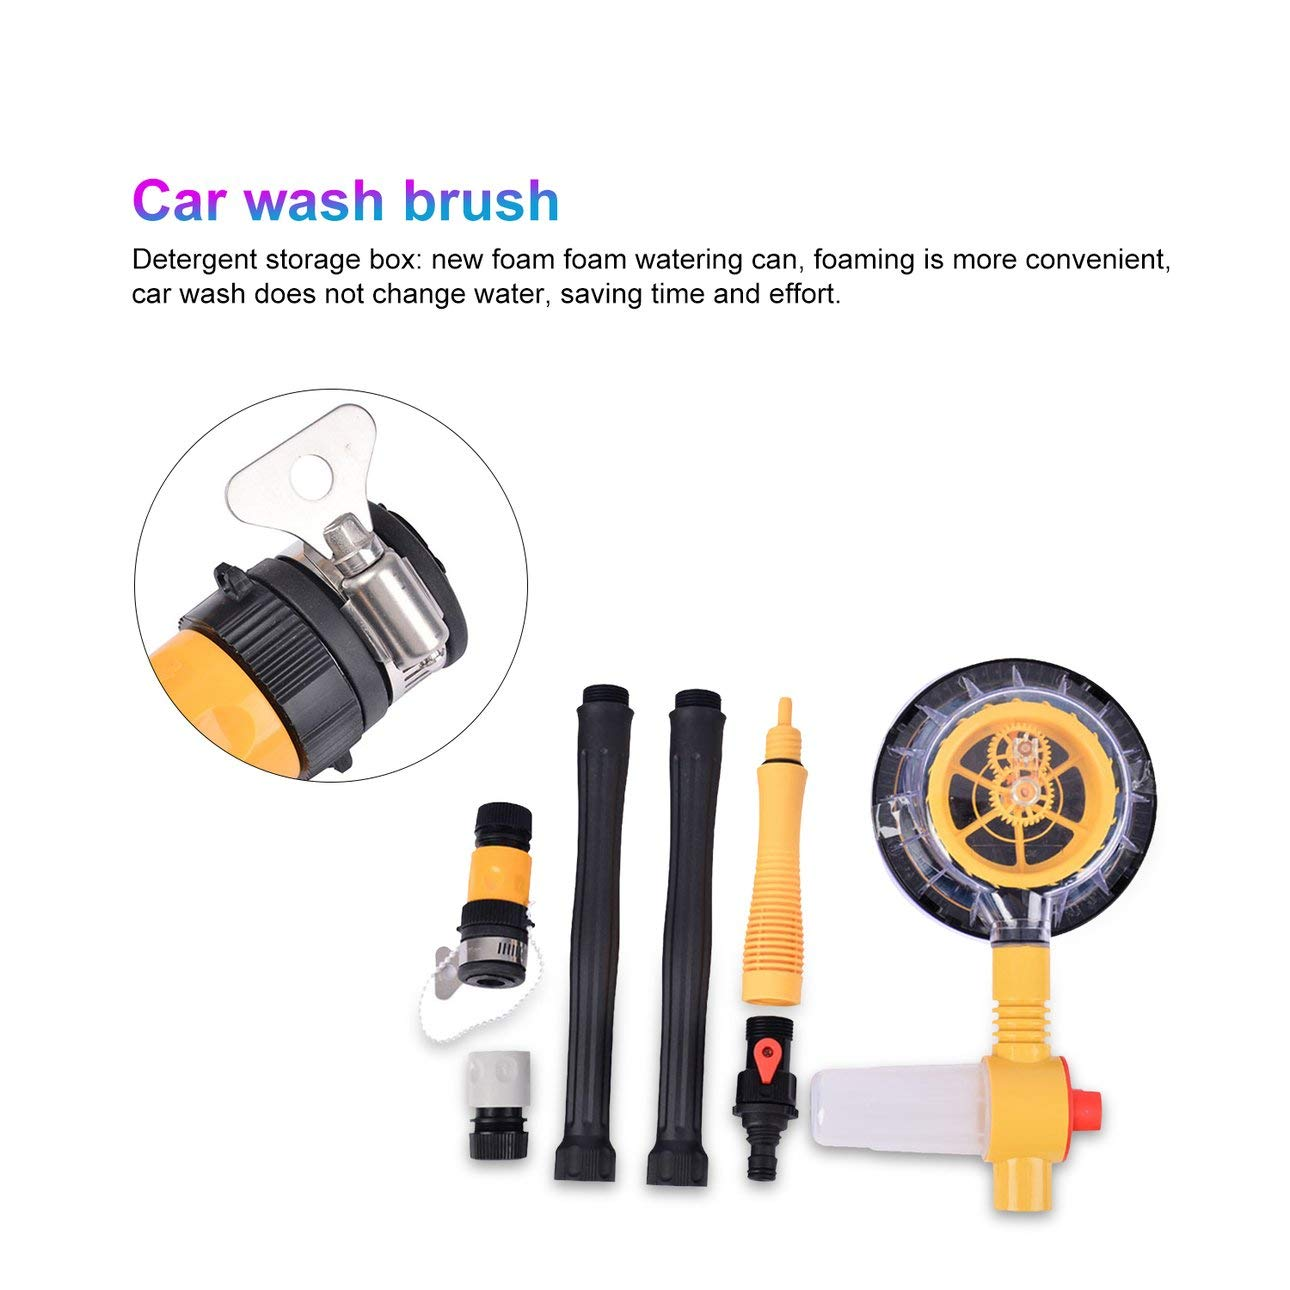 Liobaba Household Car Wash Automatic Rotating Car Wash Brush Car Brush Car Wash Tool